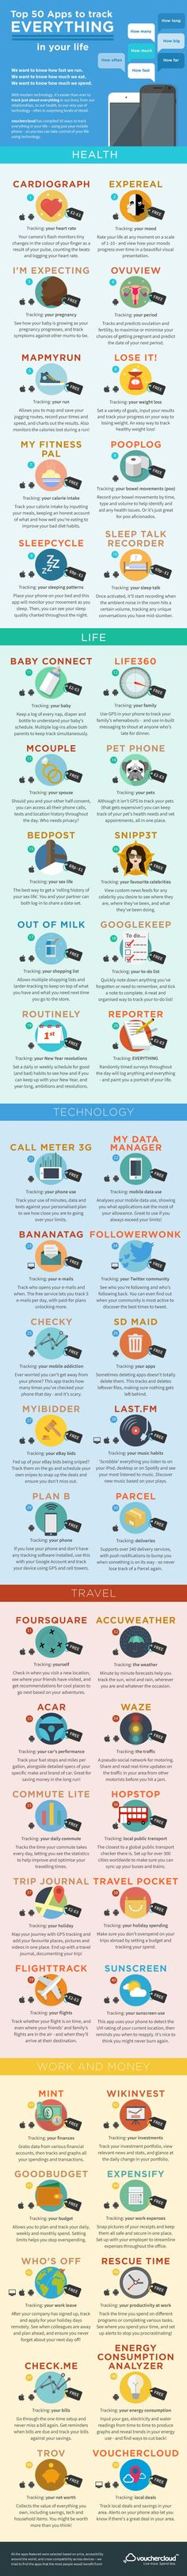 50_Apps_to_Track_Everything_infographic